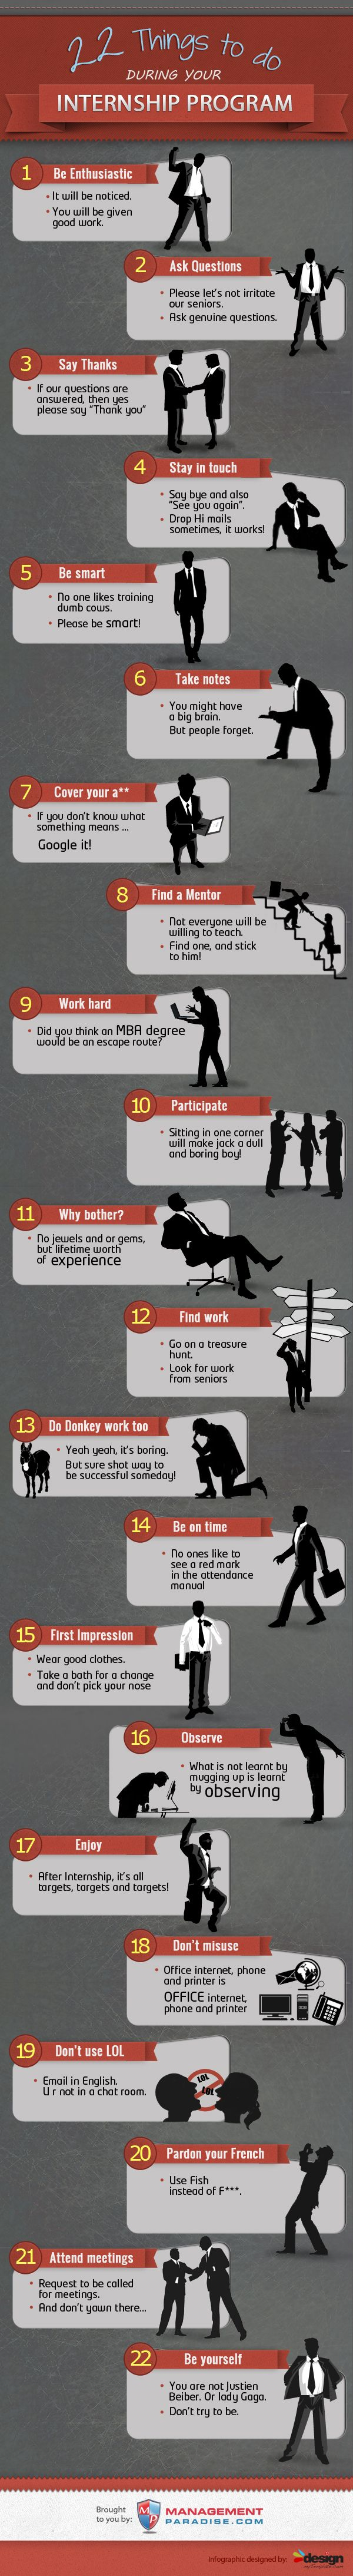 best images about internship tips summer apps 22 quick tips for making the most of your internship